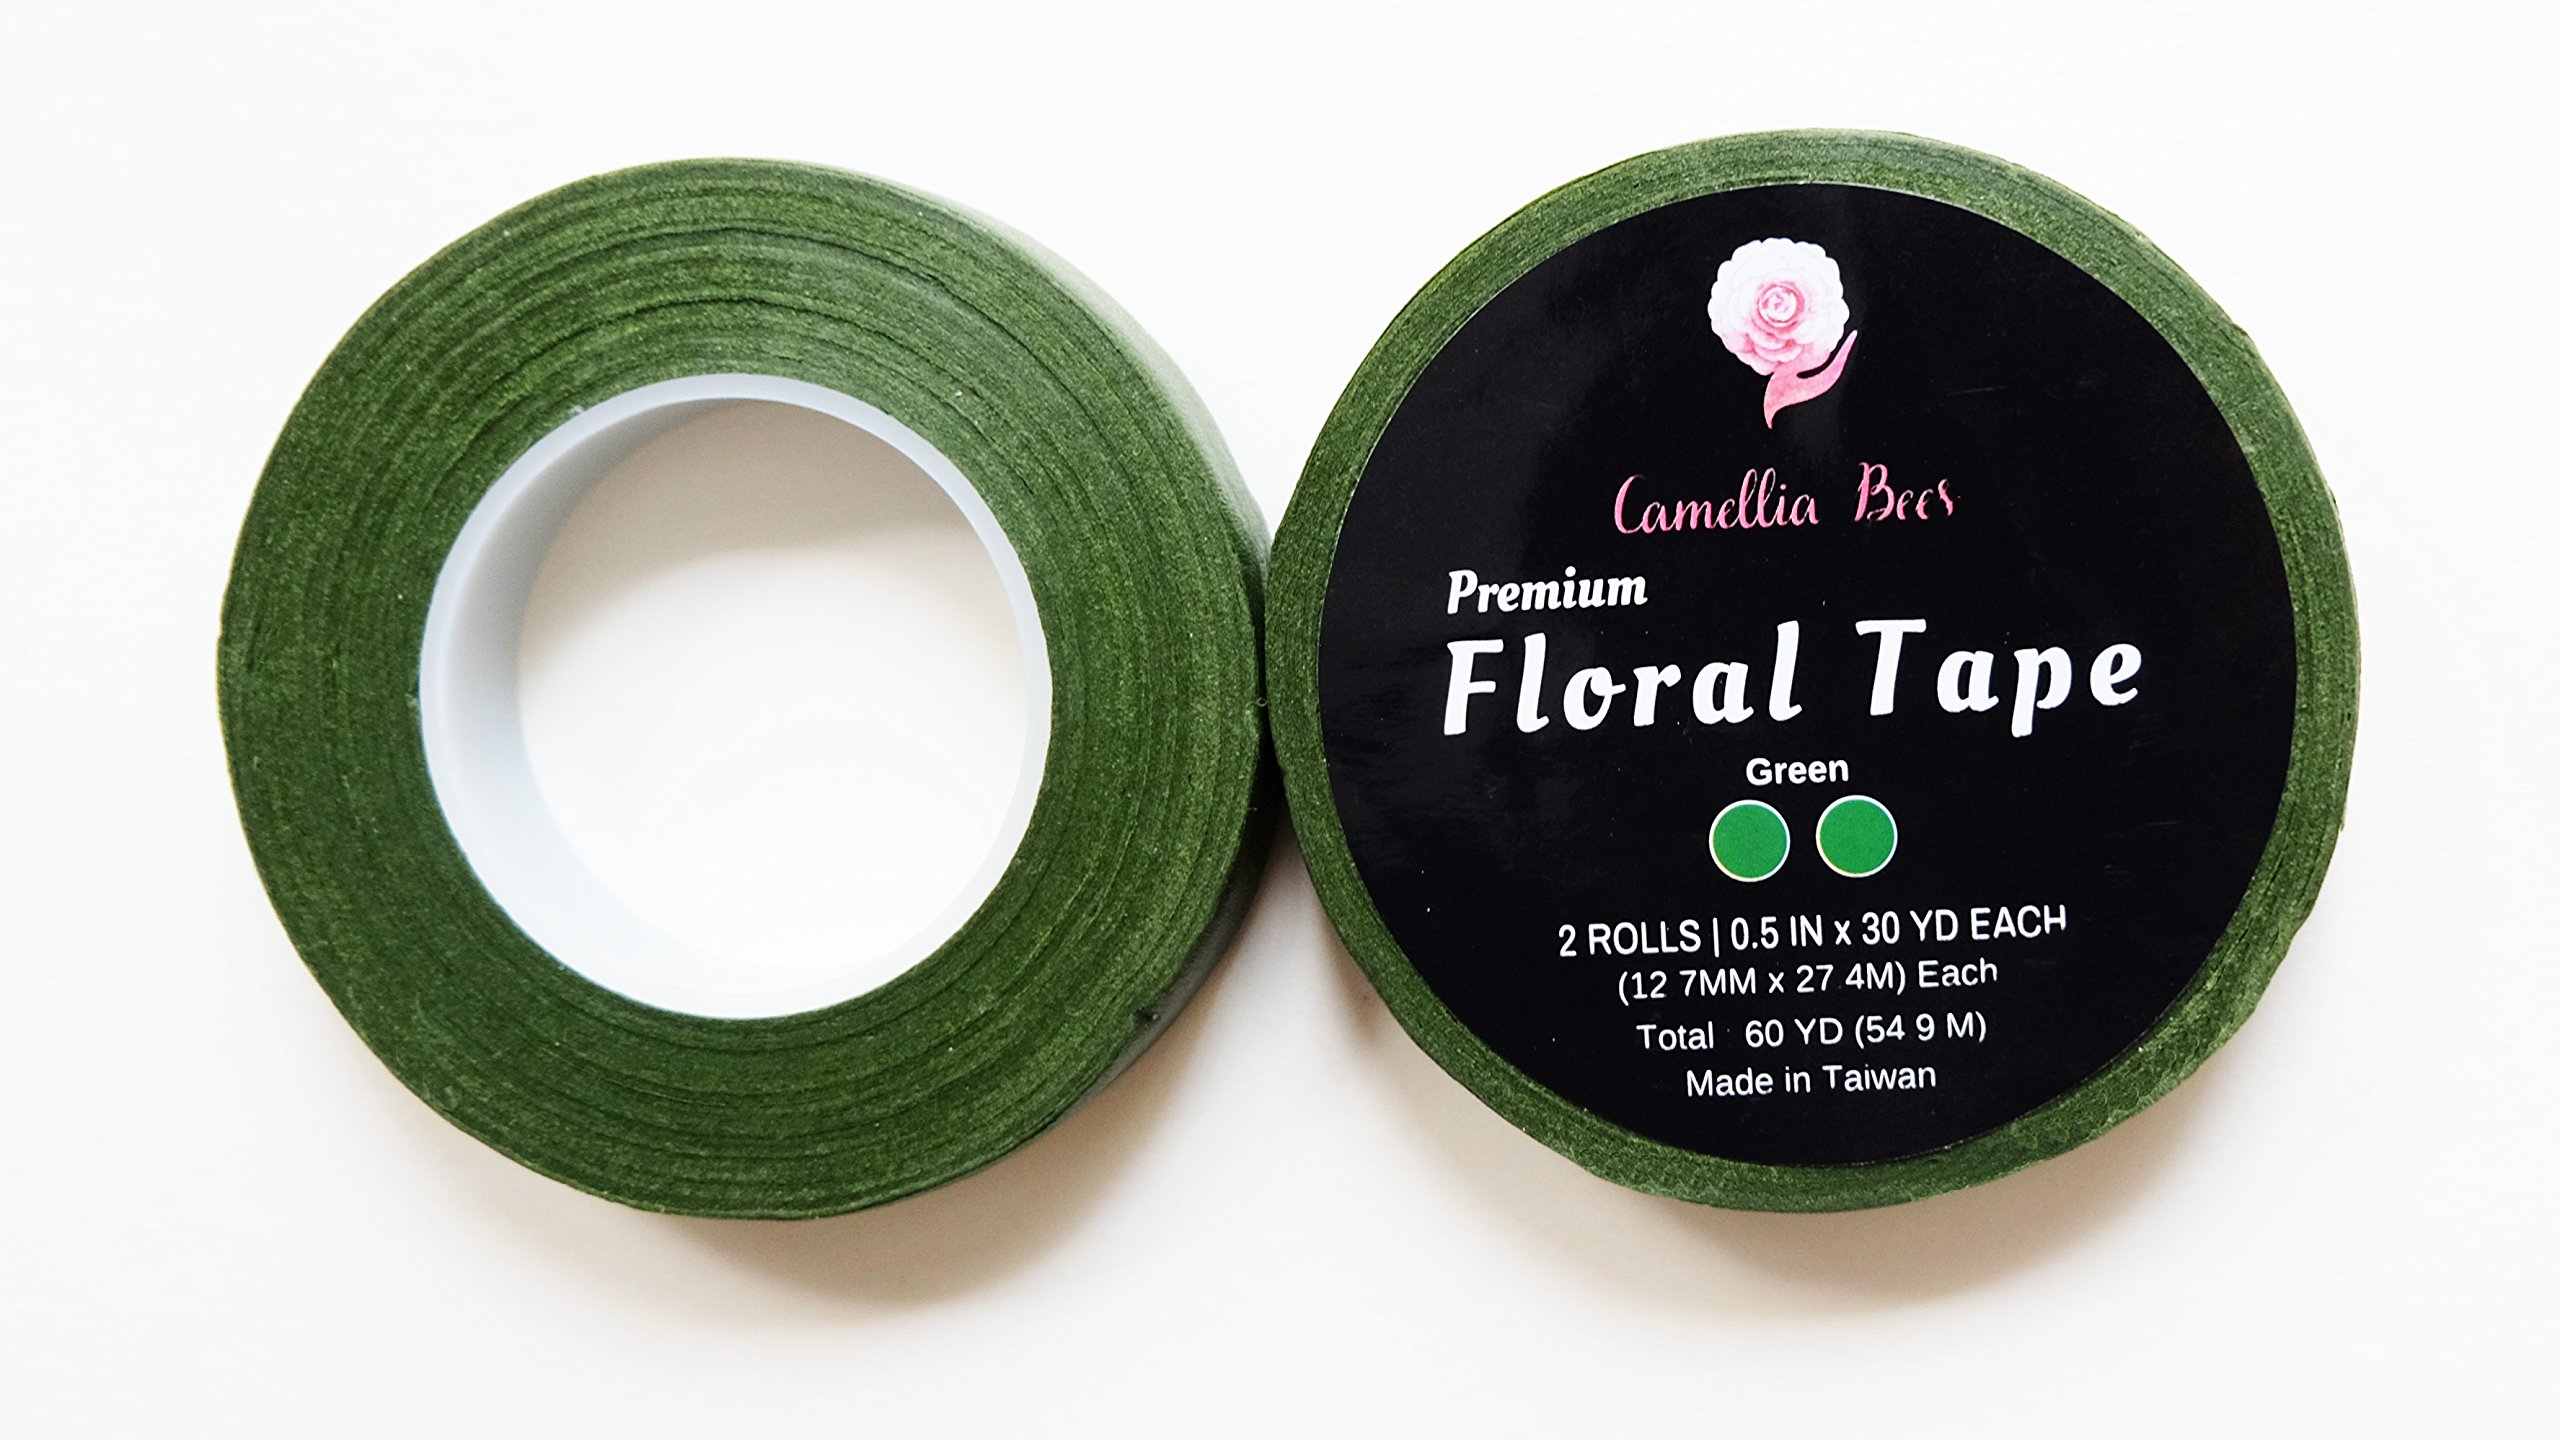 2 Rolls Green Floral/Tape,1/2 inch by 60 Yard Premium Quality Floral Tape, Self Sealing and Adhesive Floral Tape for stem wrap w/'How to use Floral Tape' ebook …